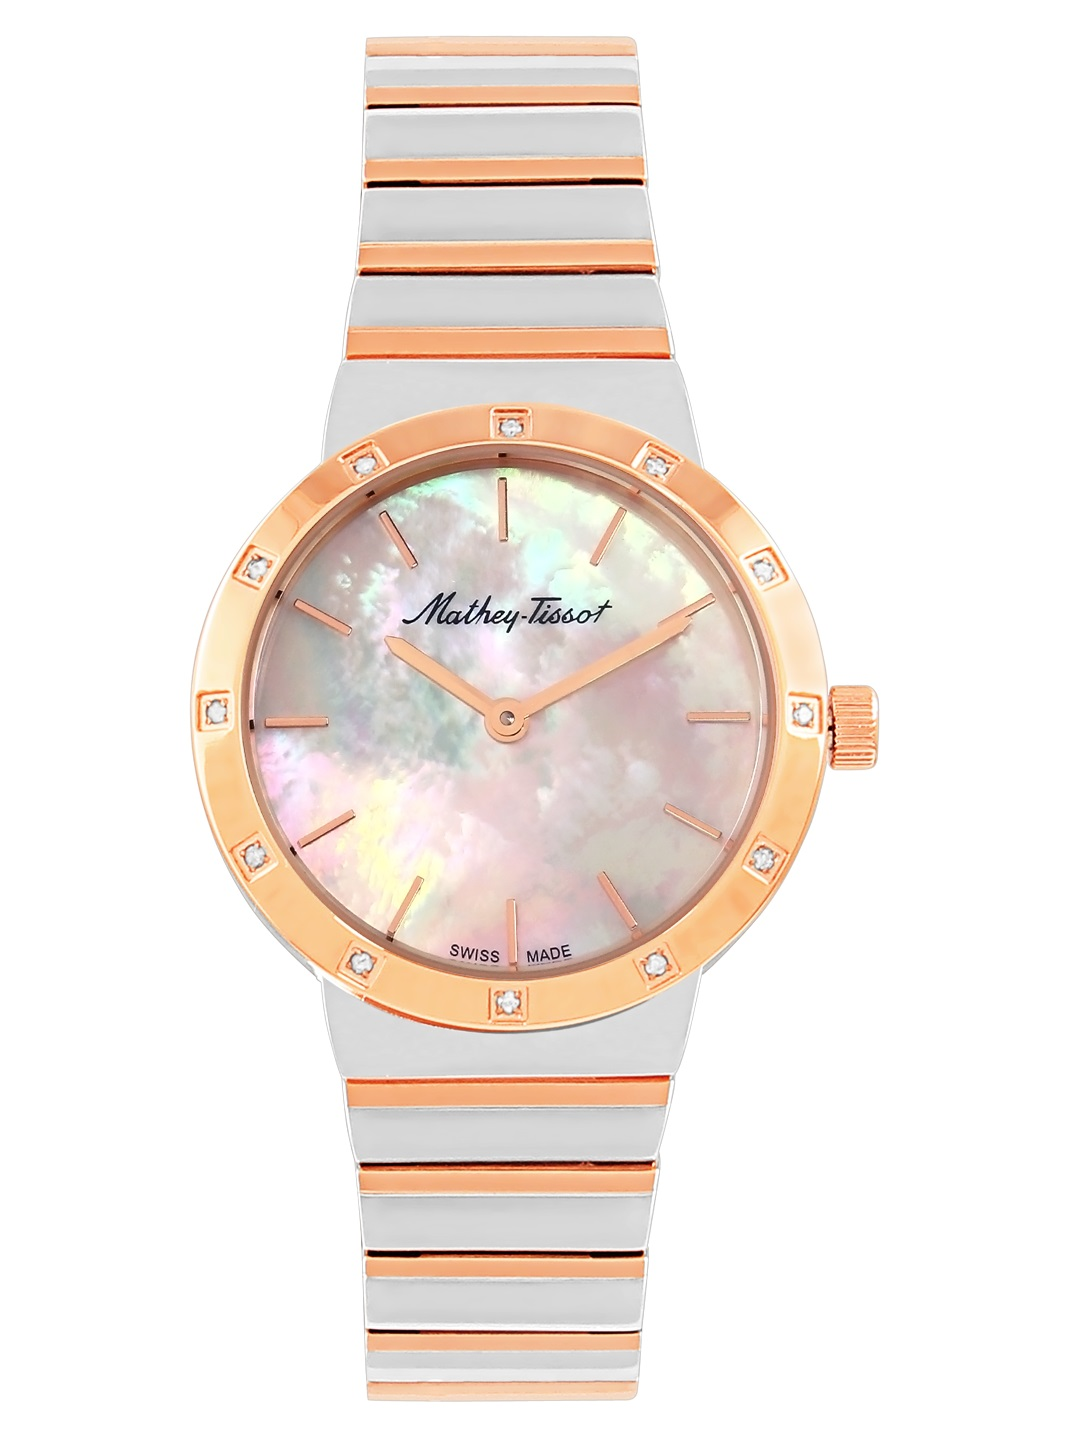 Mathey-tissot Athena Mother Of Pearl Dial Ladies Watch D593sbi In Gold Tone,mother Of Pearl,pink,rose Gold Tone,silver Tone,two Tone